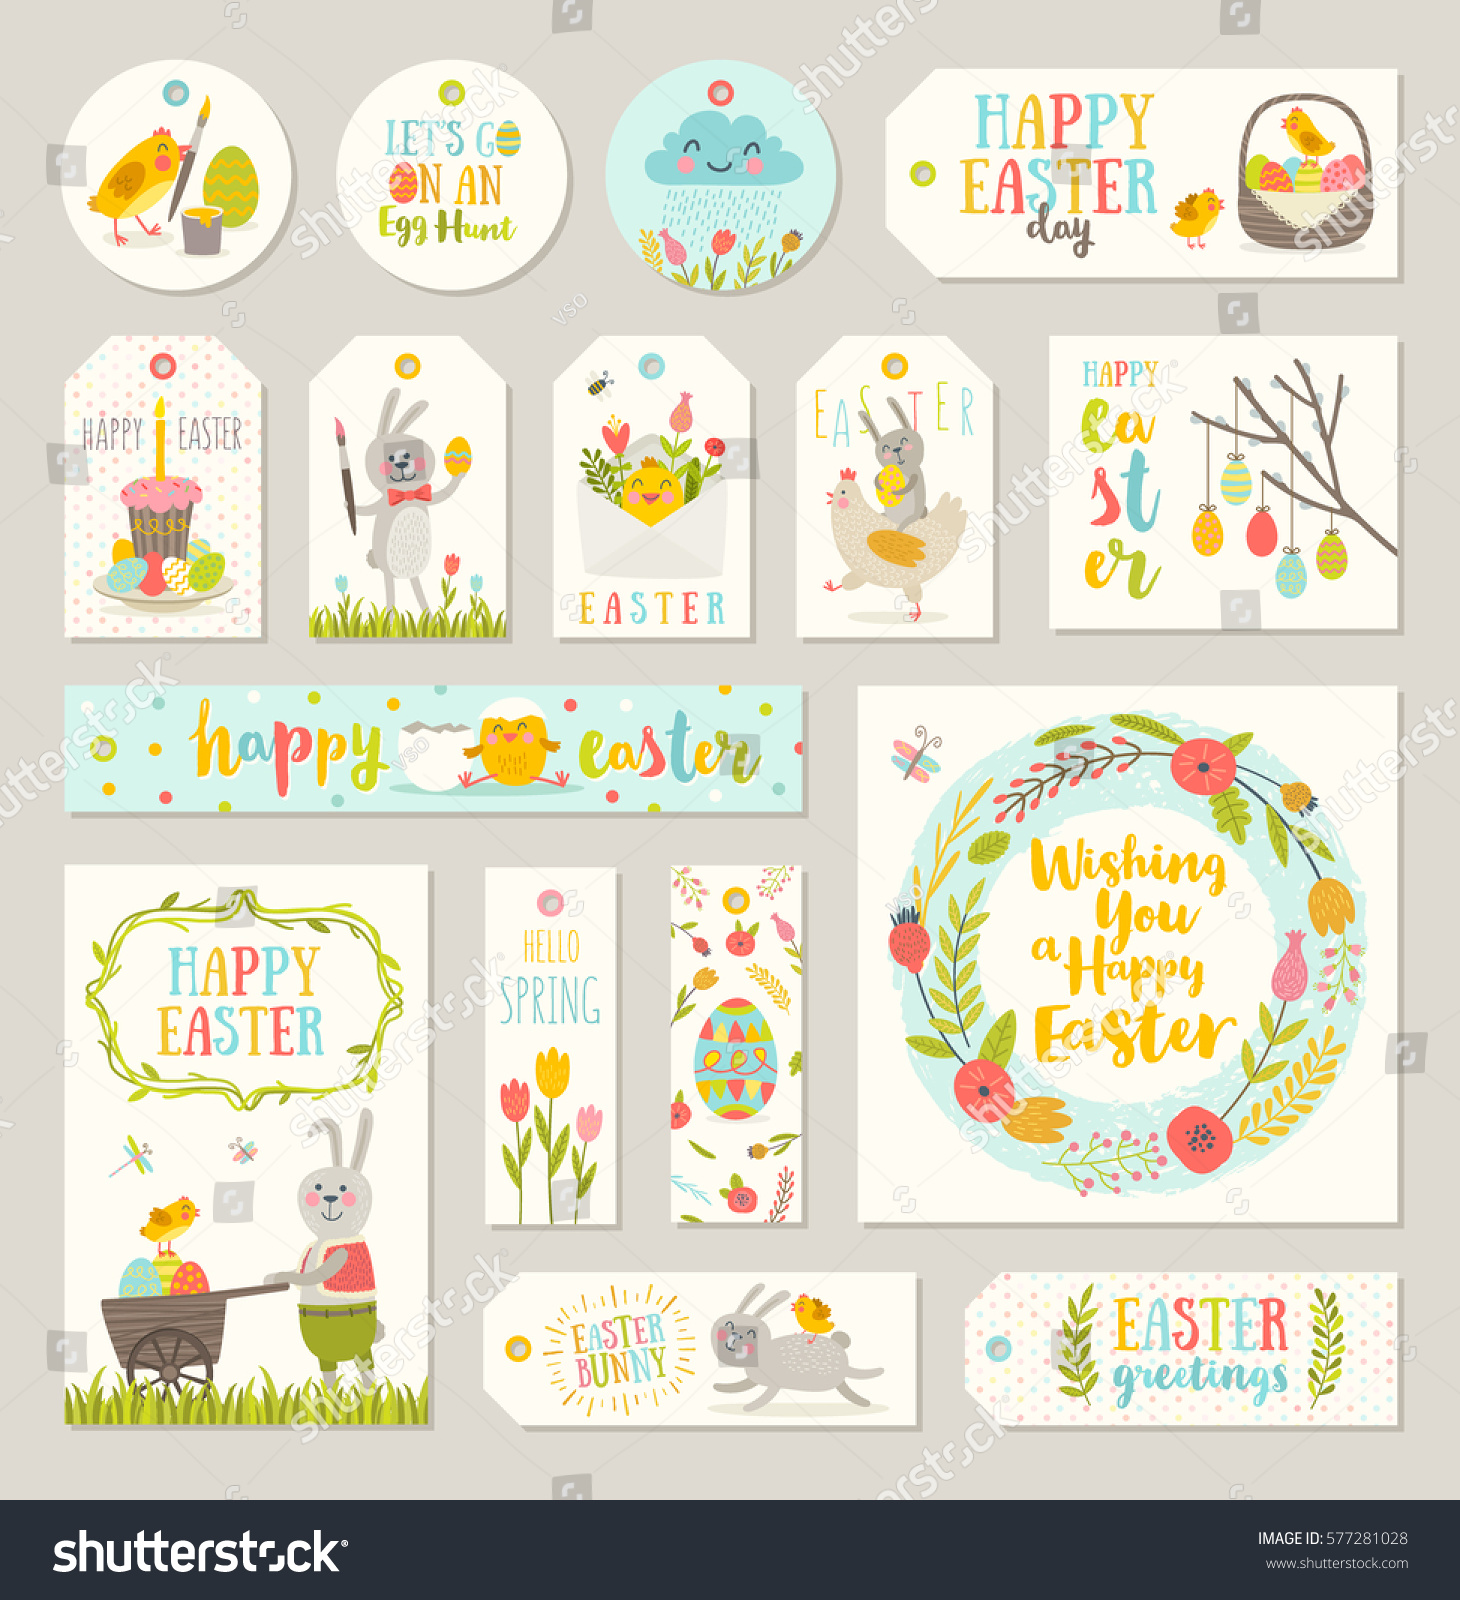 Set easter gift tags labels cute stock vector 577281028 shutterstock set of easter gift tags and labels with cute cartoon characters and type design easter negle Image collections